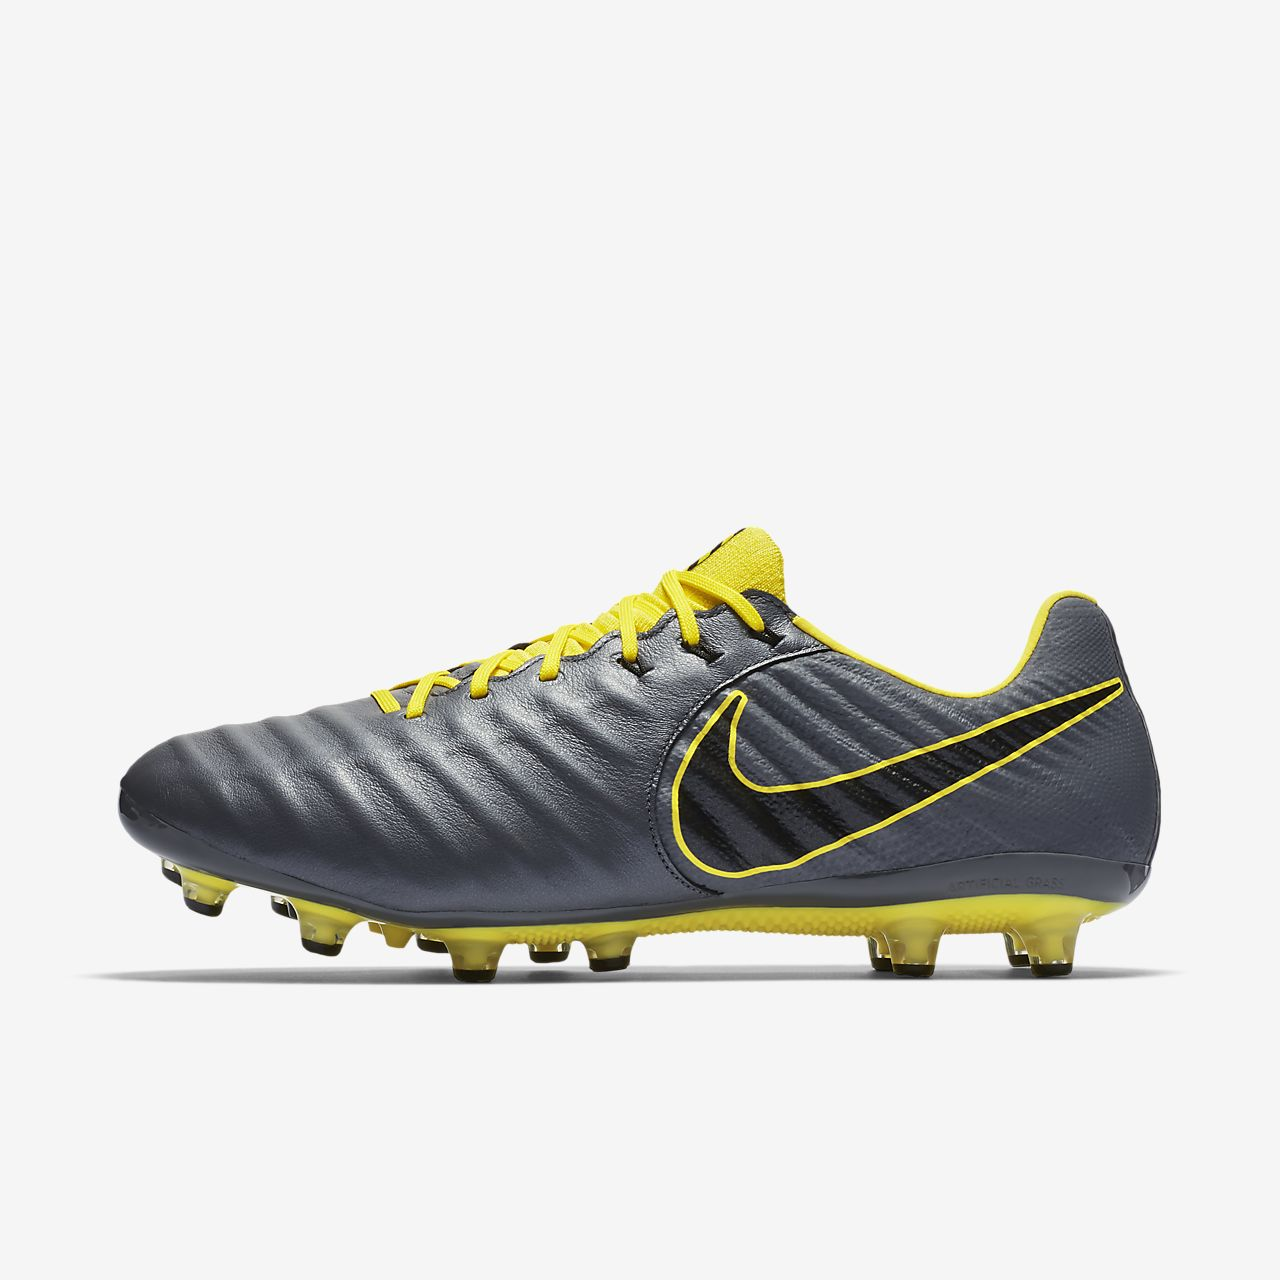 49abf4ace6e3 Nike Legend VII Elite AG-PRO Artificial-Grass Football Boot. Nike.com GB